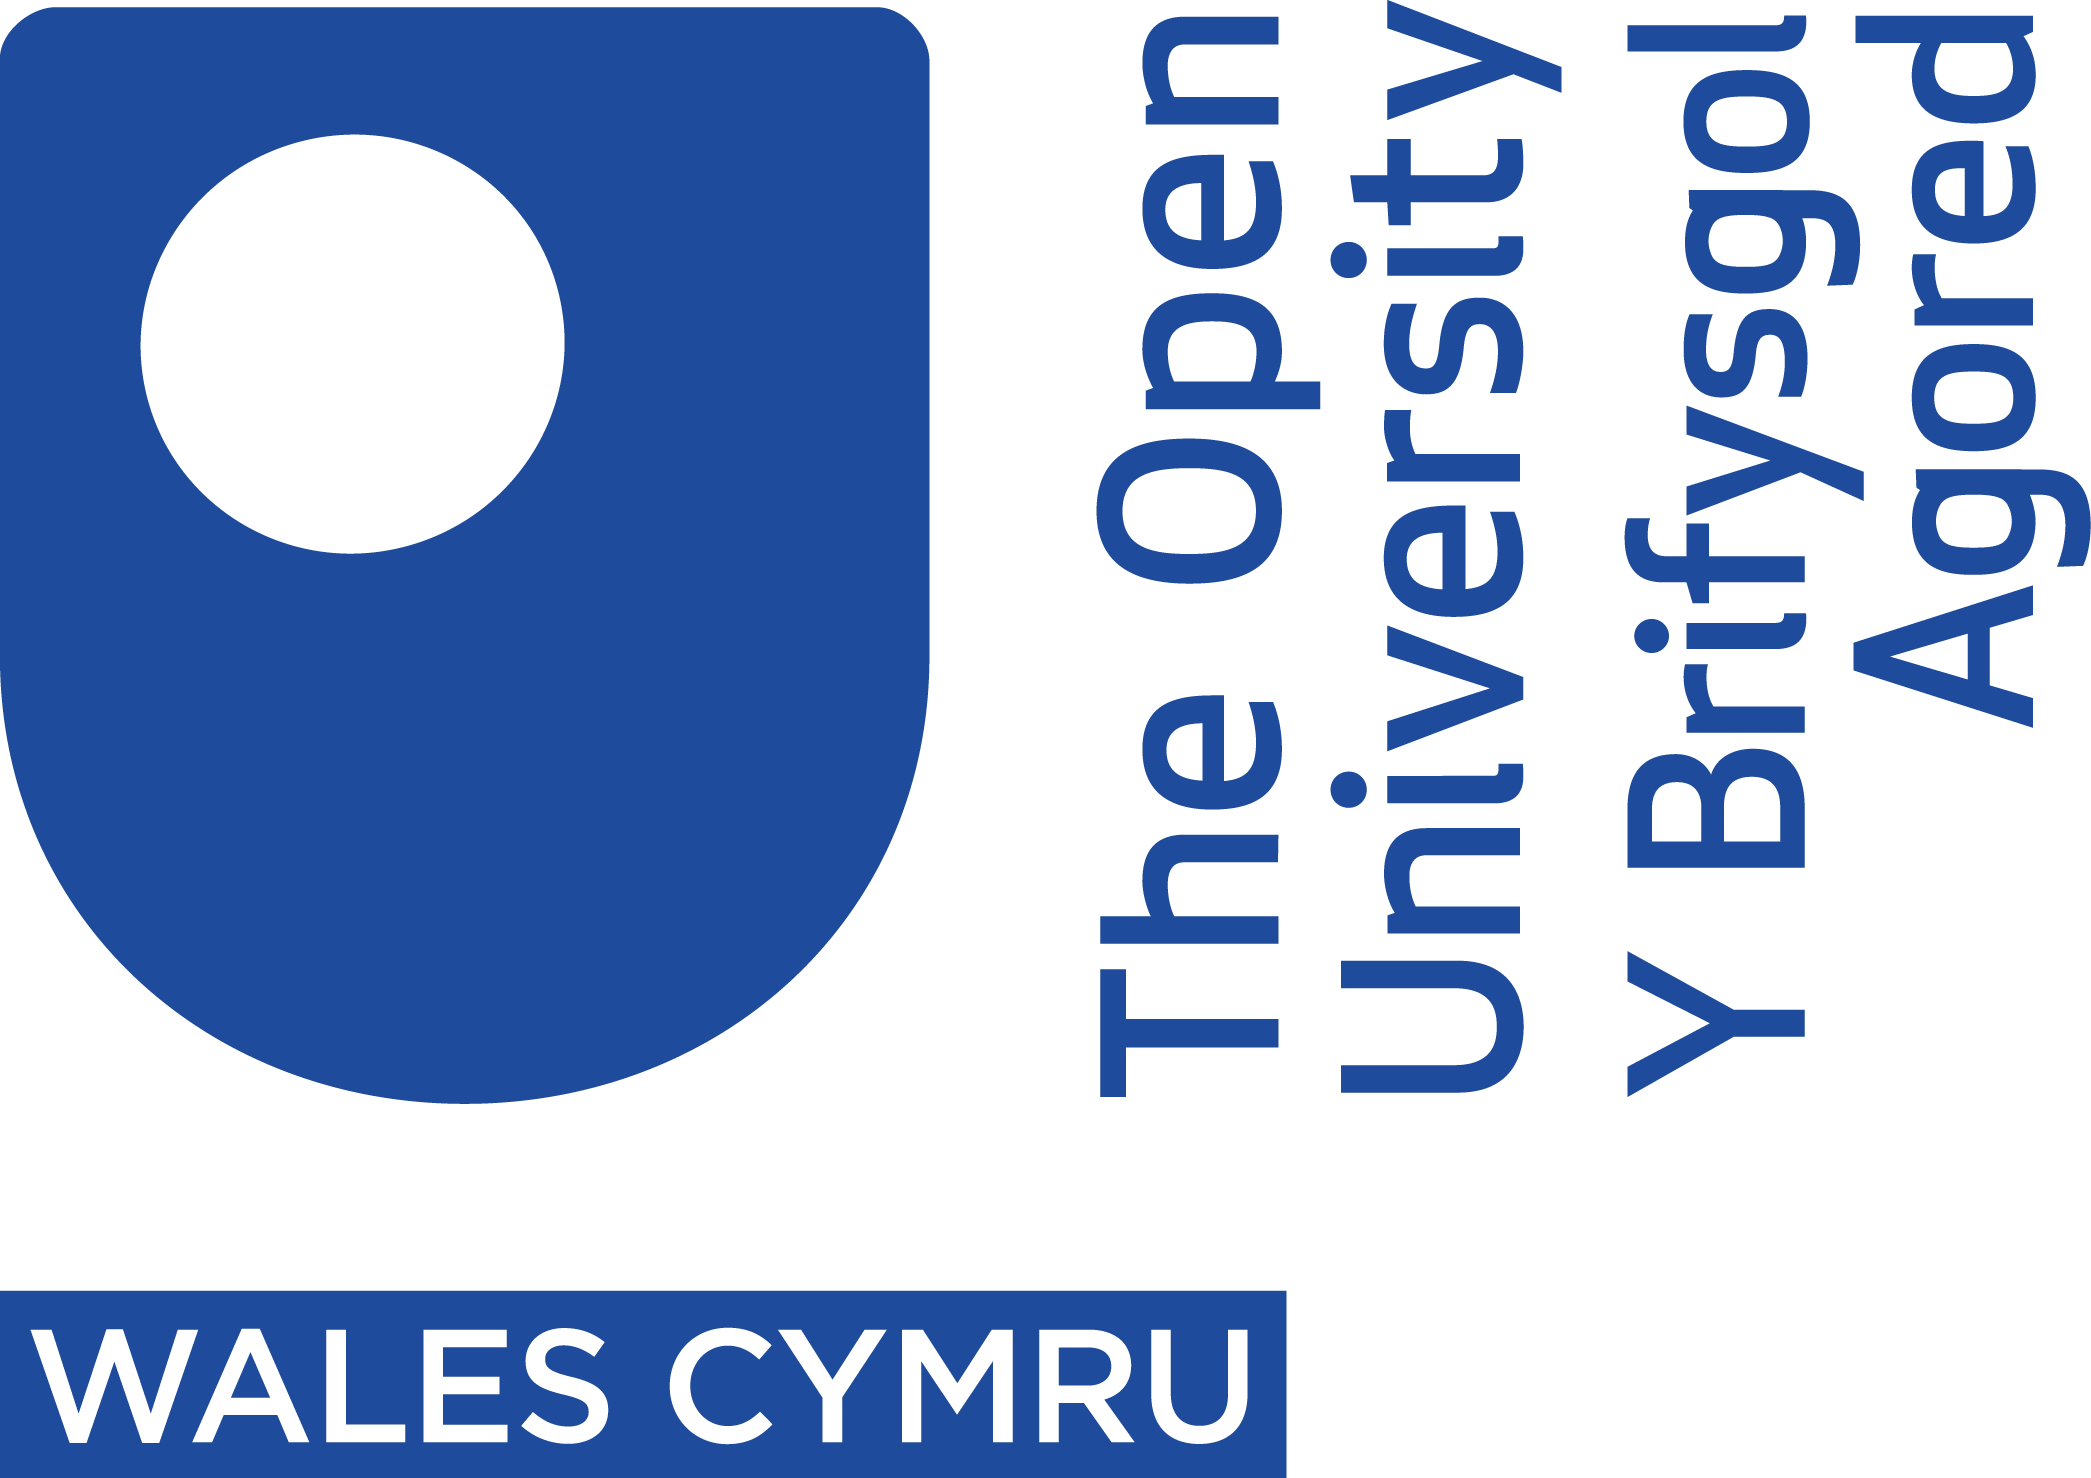 ou wales logo dark blue 177mm